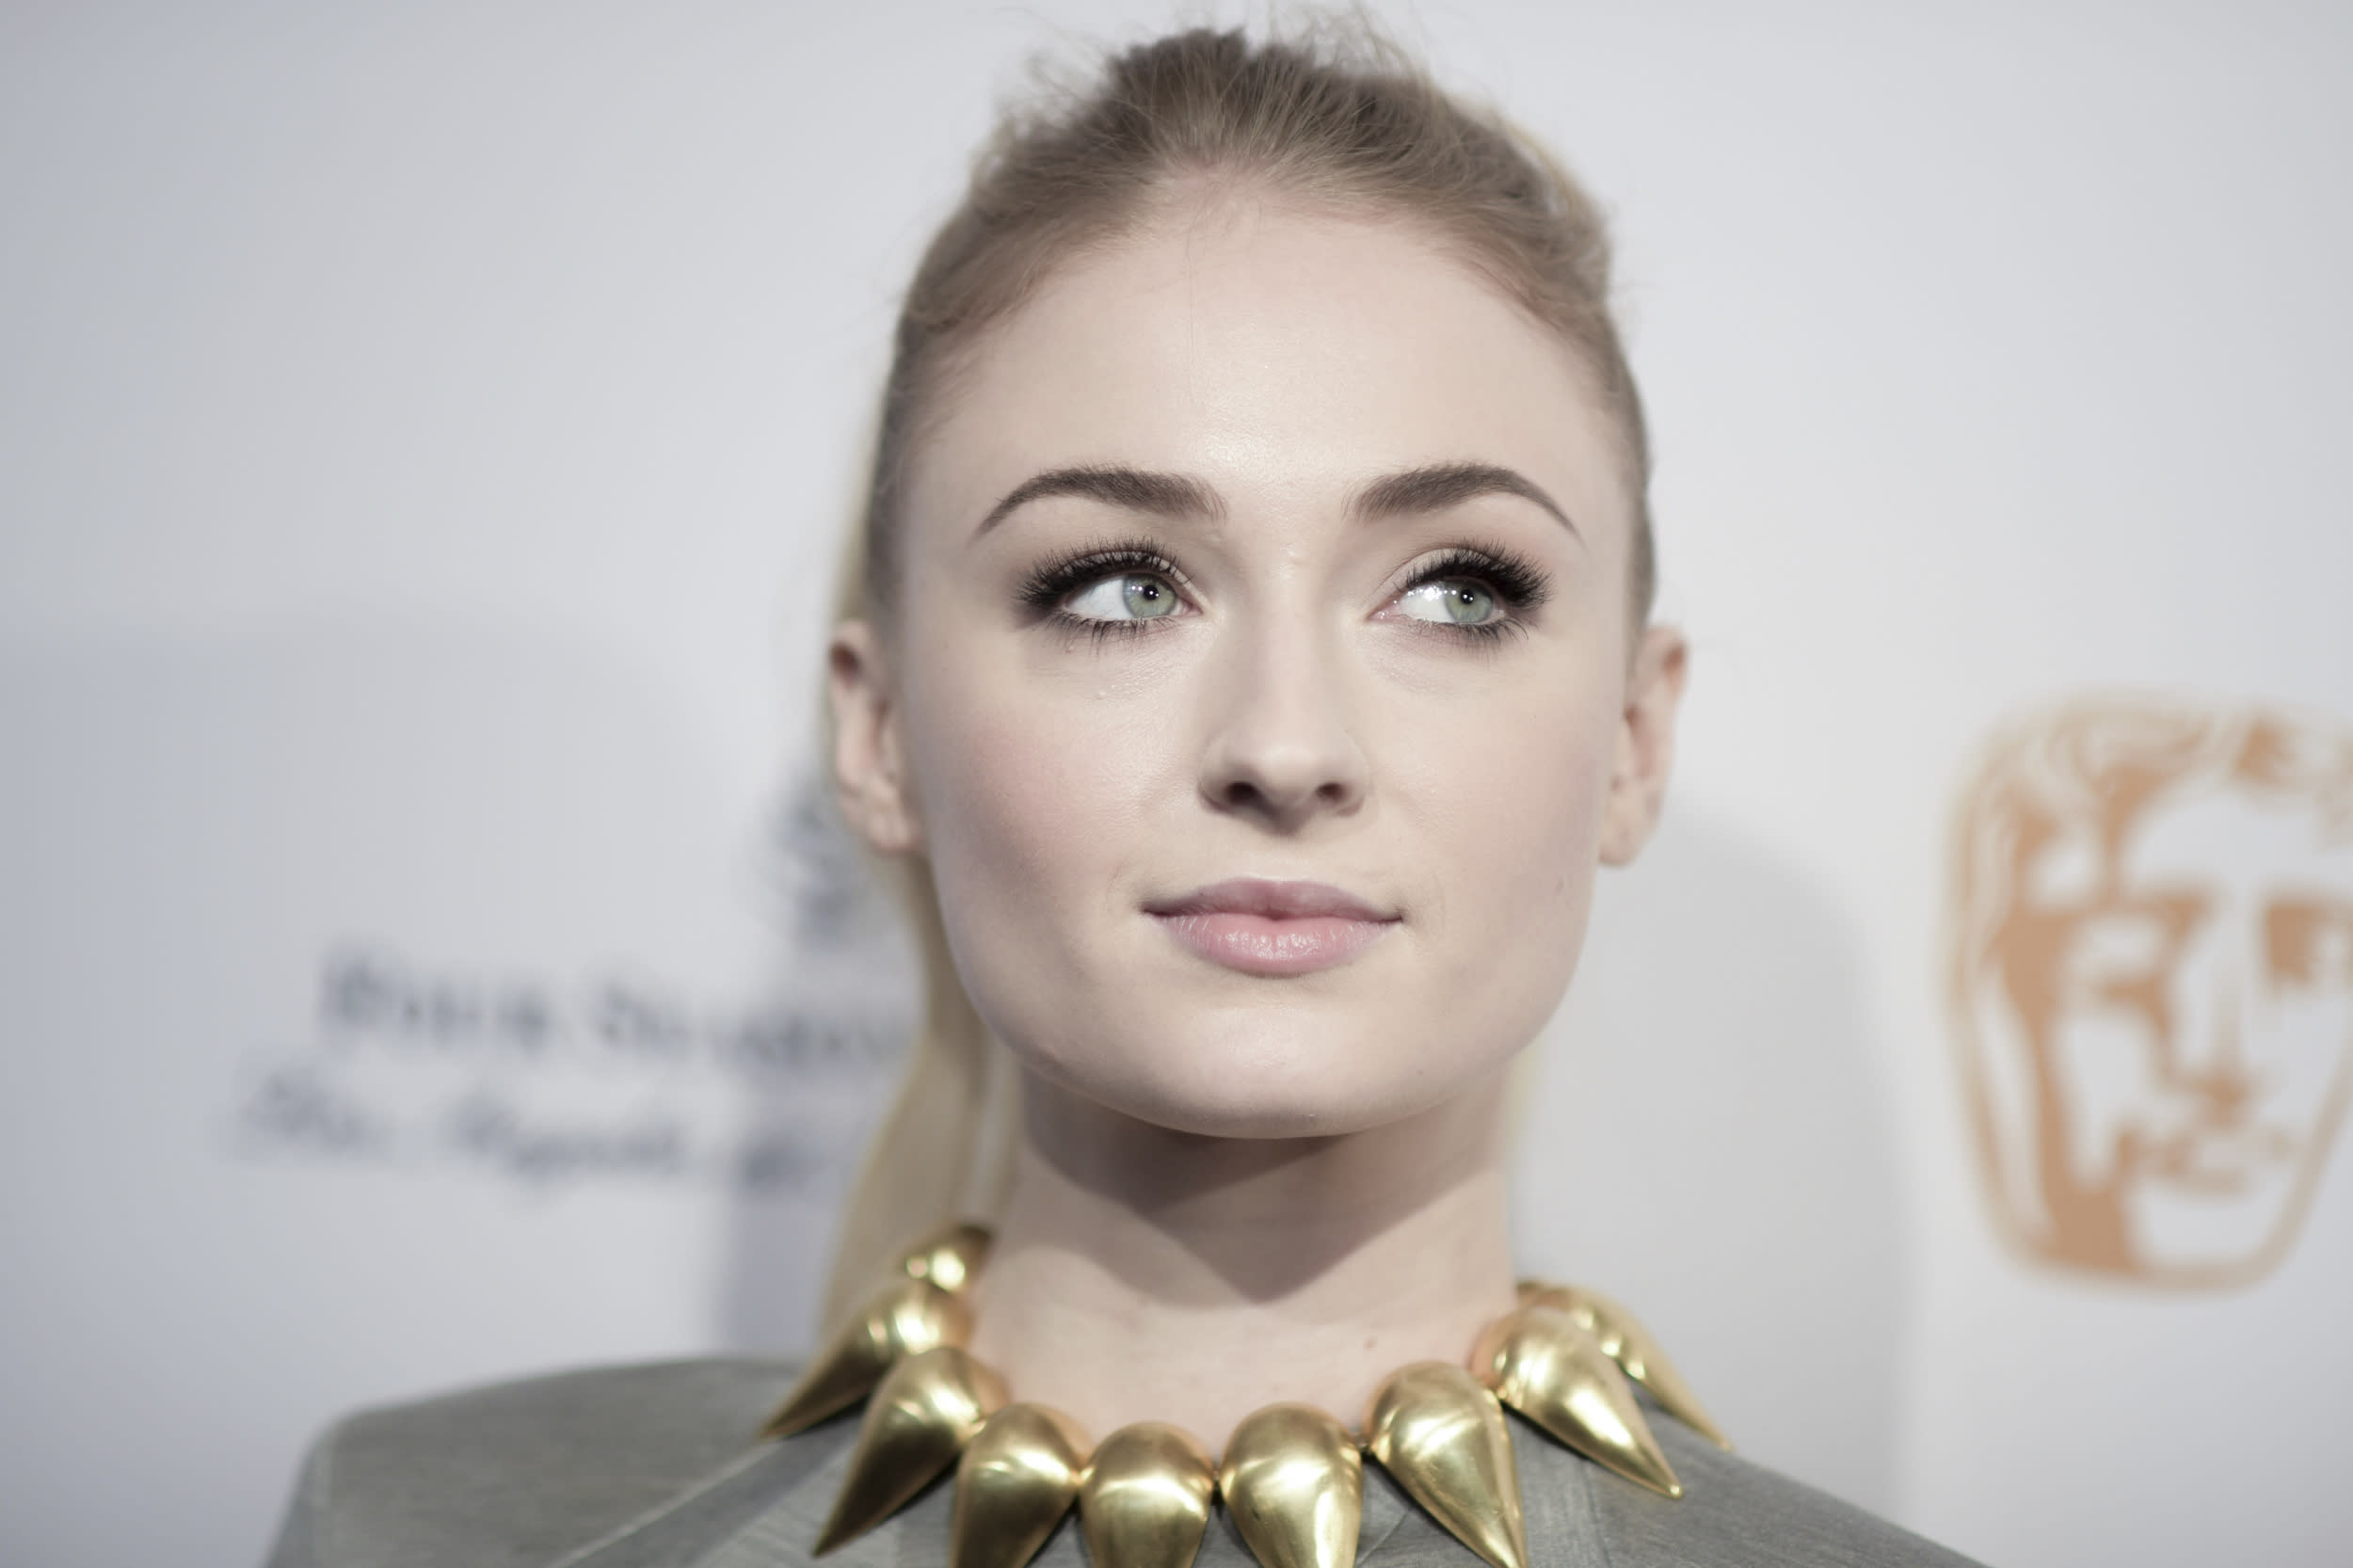 Sophie Turner attends the 2017 BAFTA Los Angeles Awards Season Tea Party held at Four Seasons Hotel on Saturday, Jan. 7, 2017, in Los Angeles. (Photo by Richard Shotwell/Invision/AP)